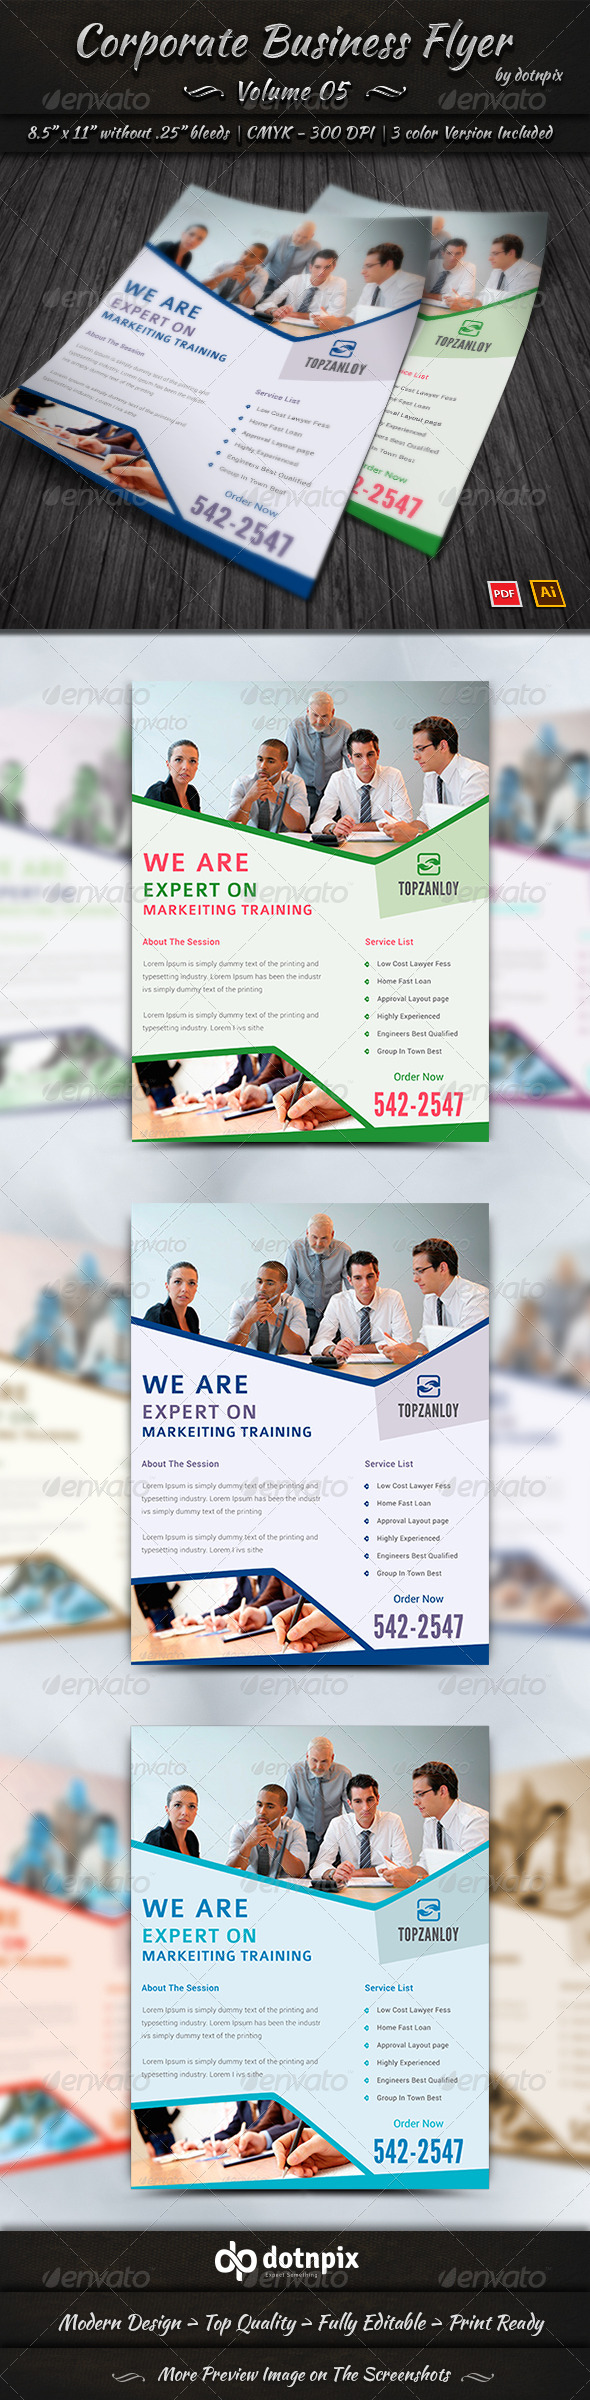 Corporate Business Flyer | Volume 5 - Corporate Flyers